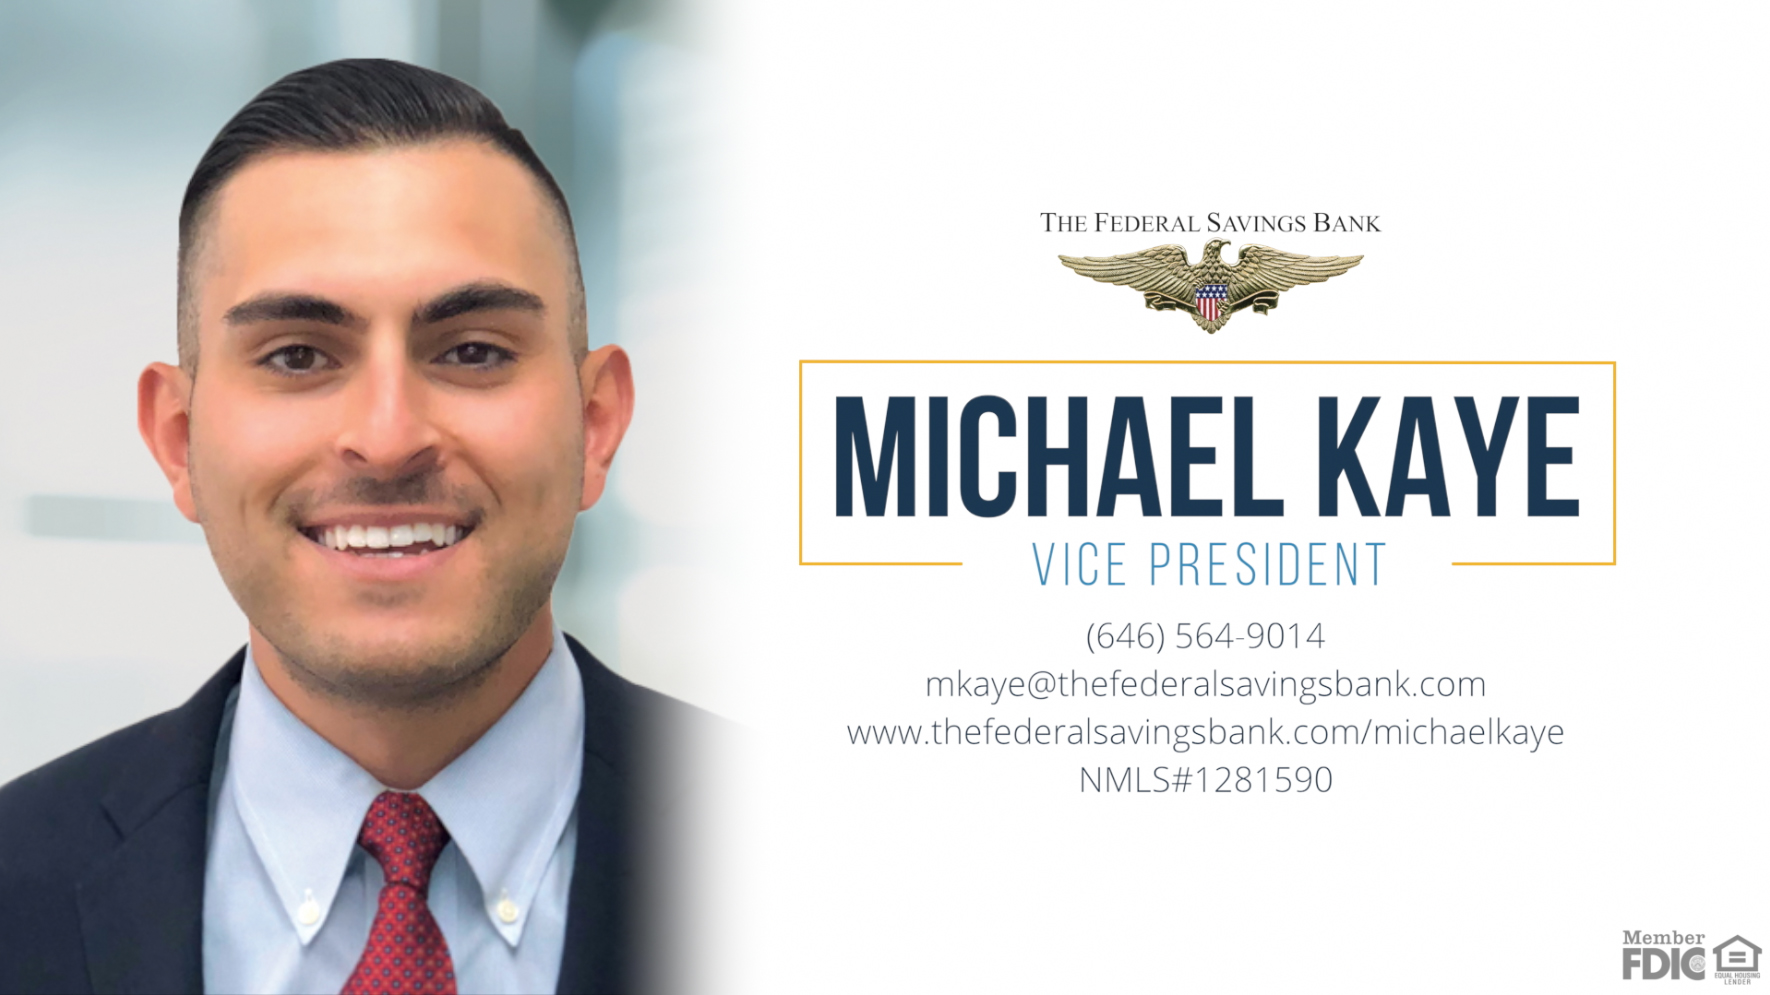 Michael Kaye Testimonial Video - 279538599